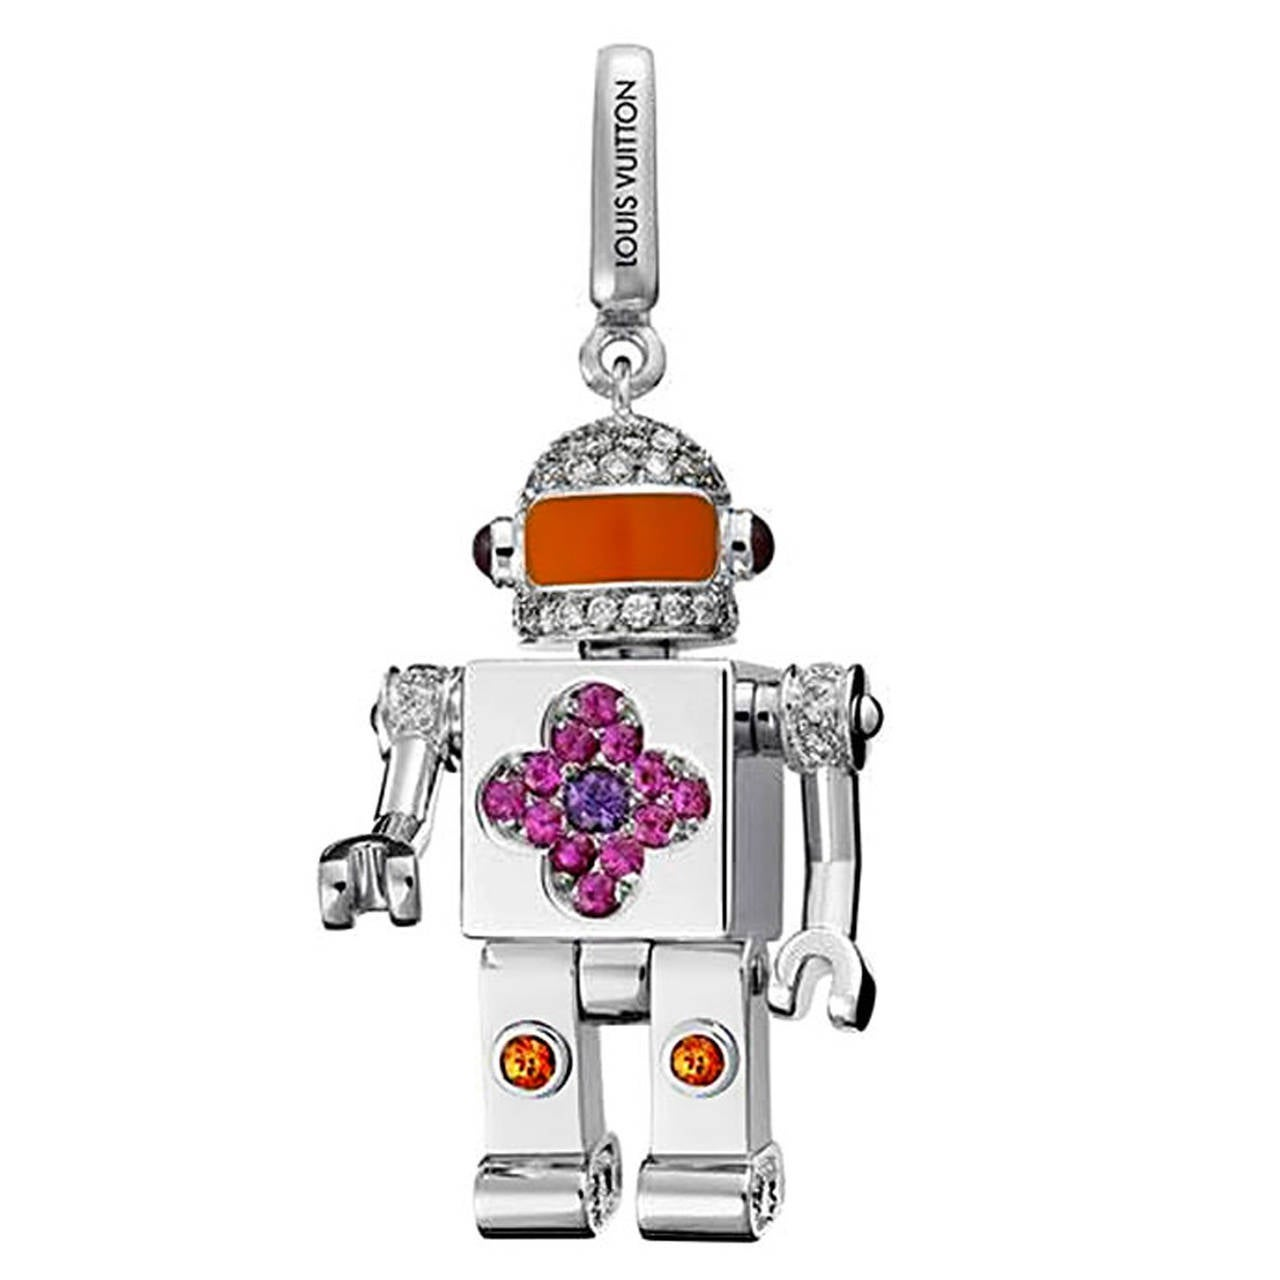 Louis Vuitton Space Man Sapphire Diamond Gold Charm Pendant